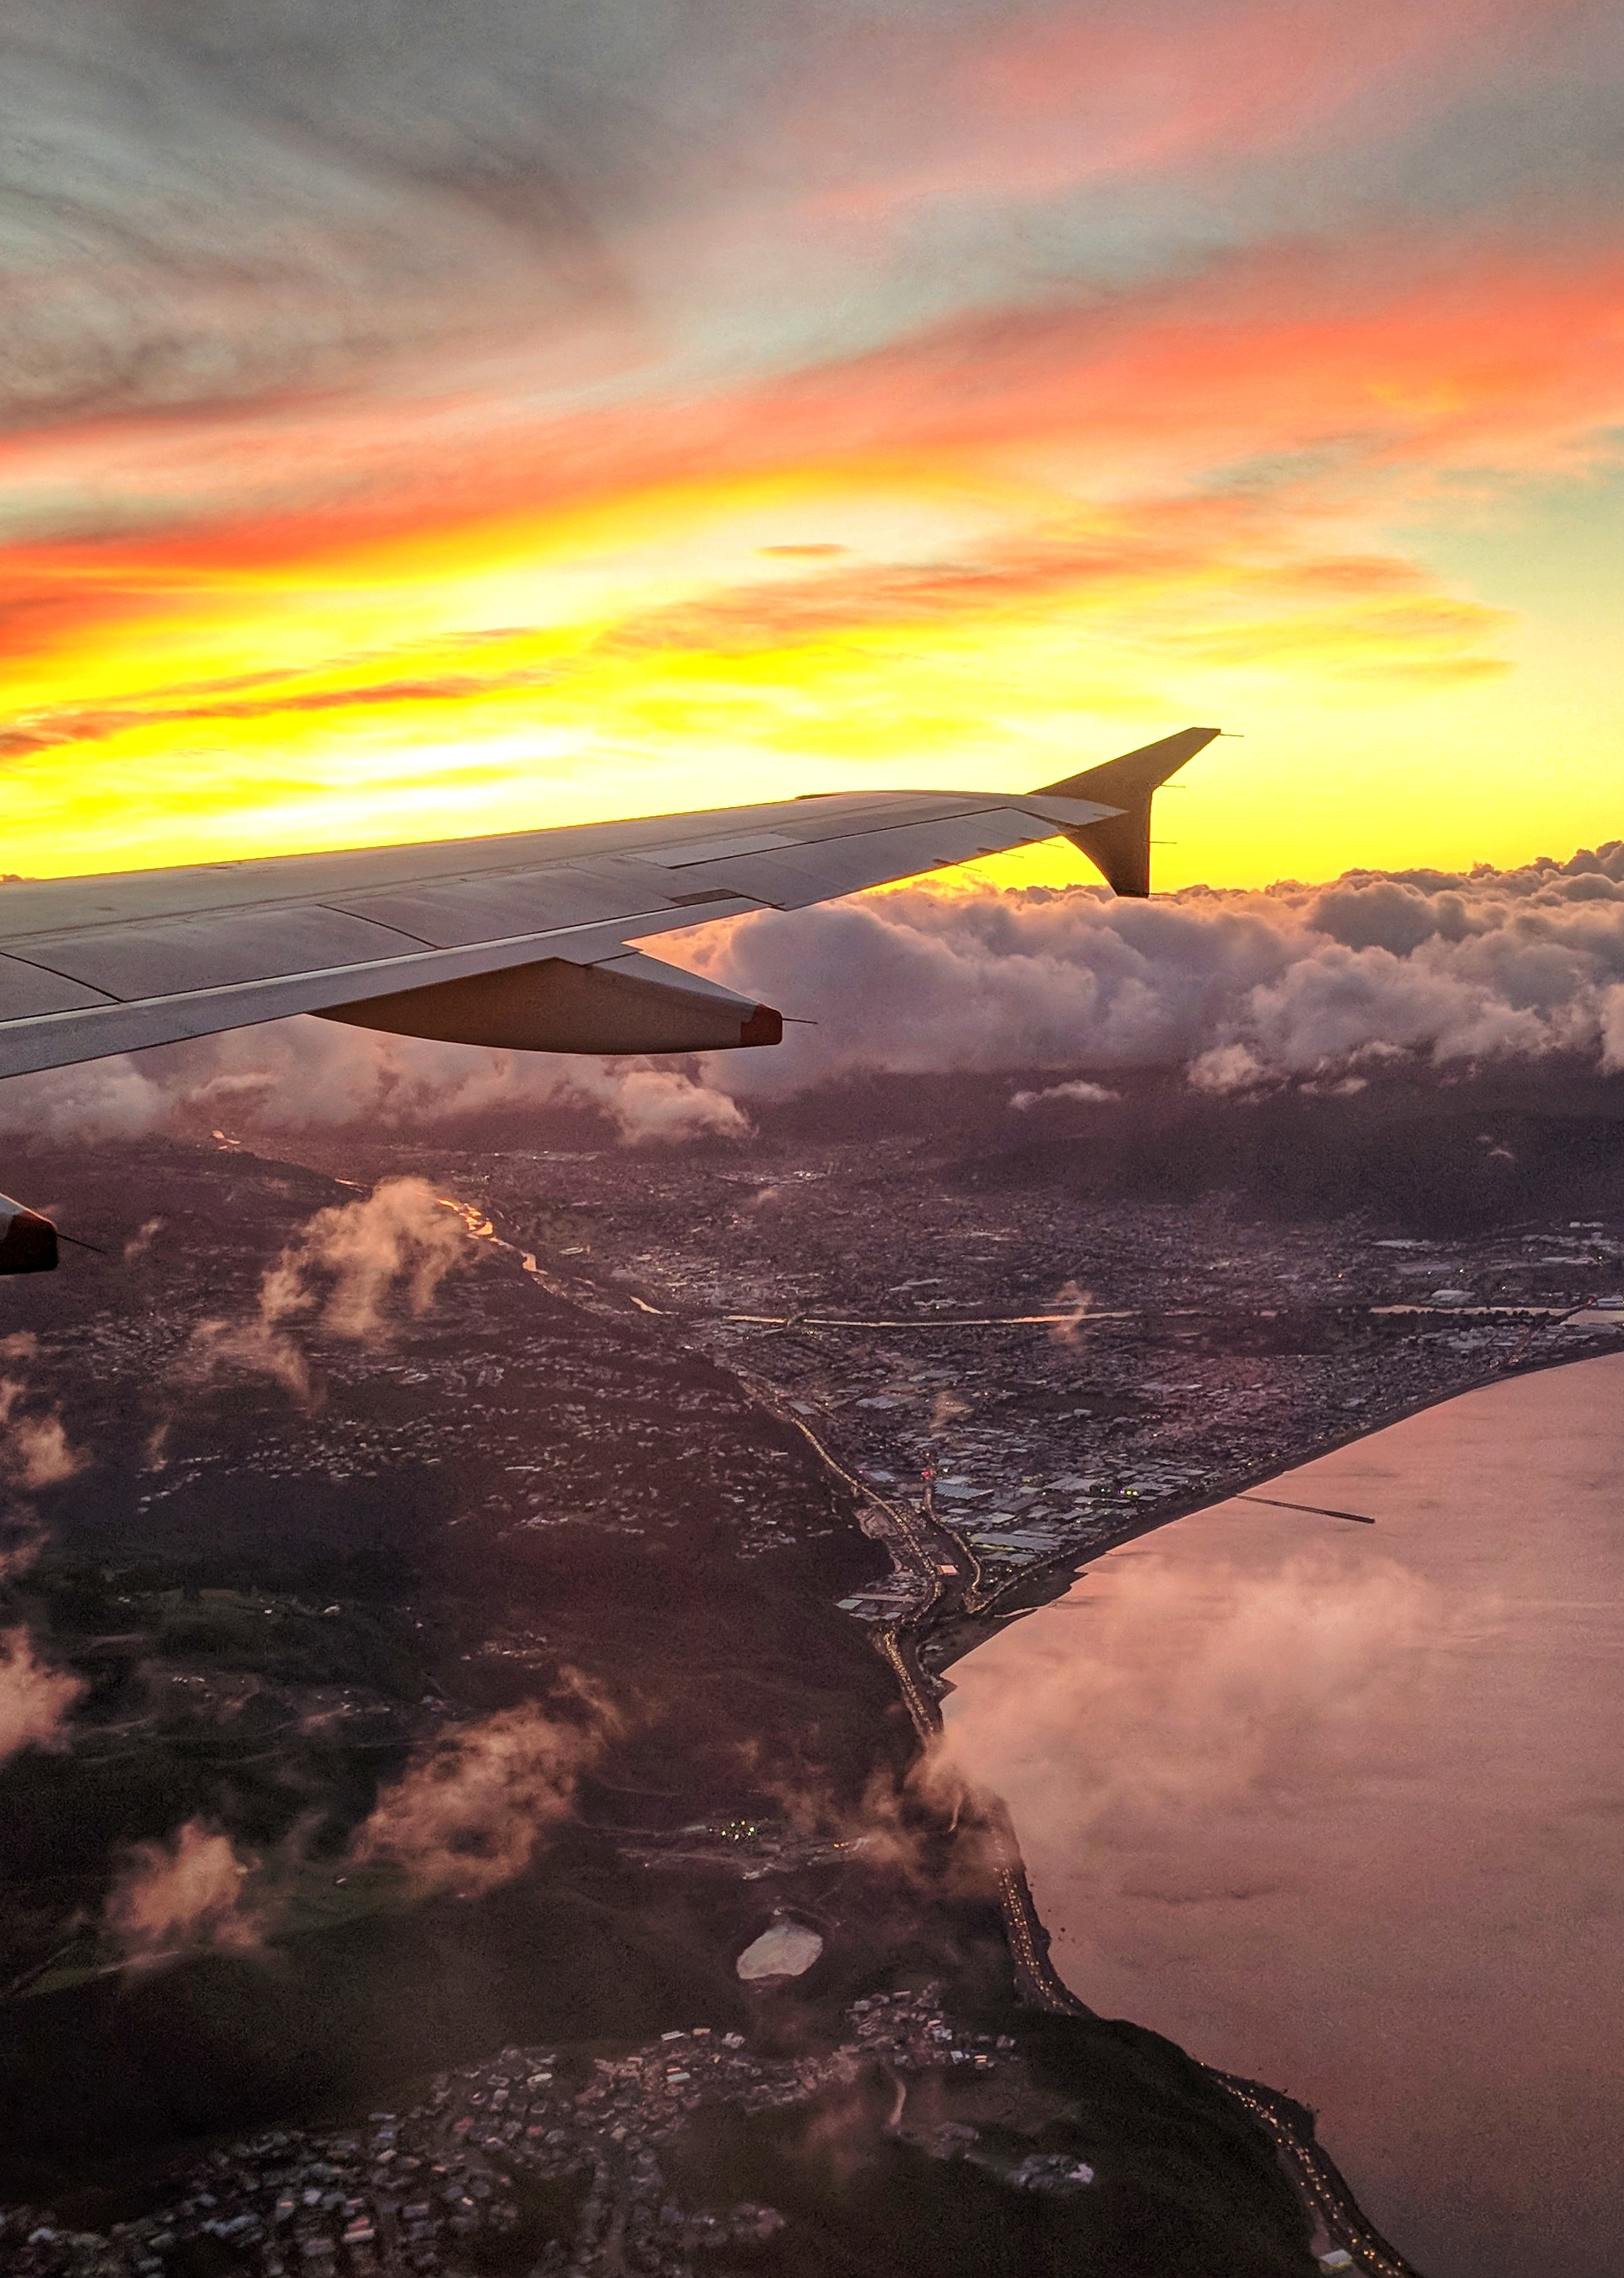 Sunrise over Hutt Valley from a plane